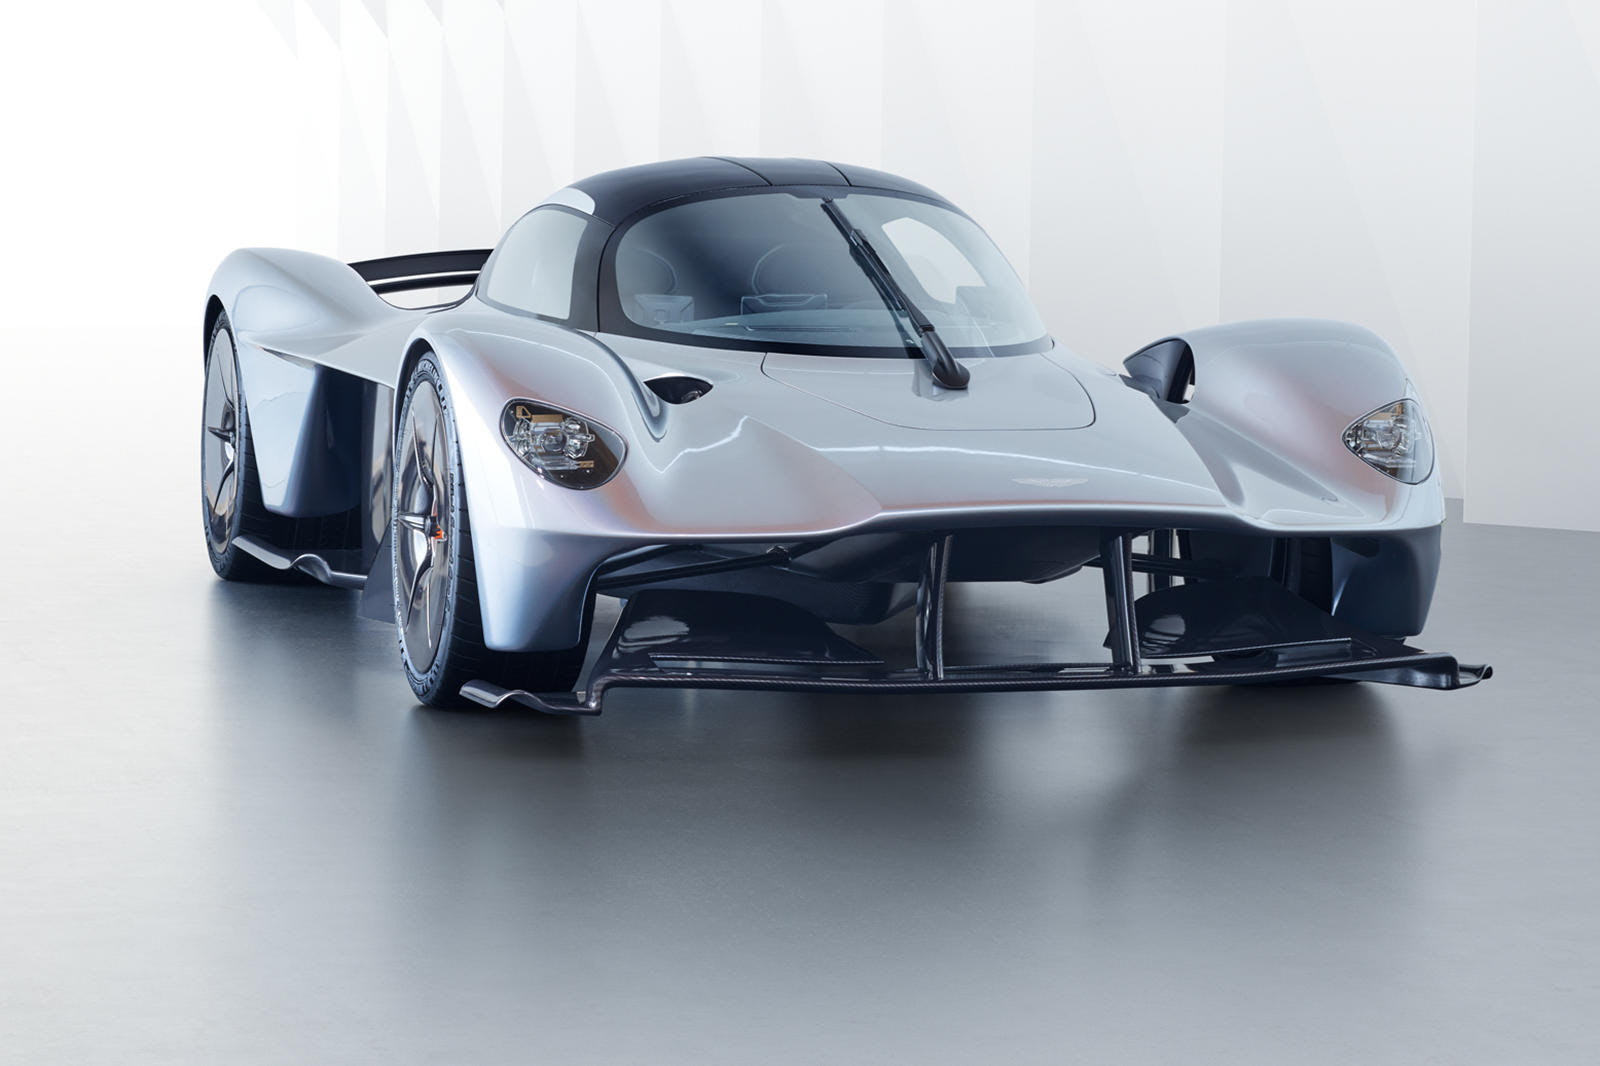 Aston Martin Valkyrie Review Trims Specs Price New Interior Features Exterior Design And Specifications Carbuzz